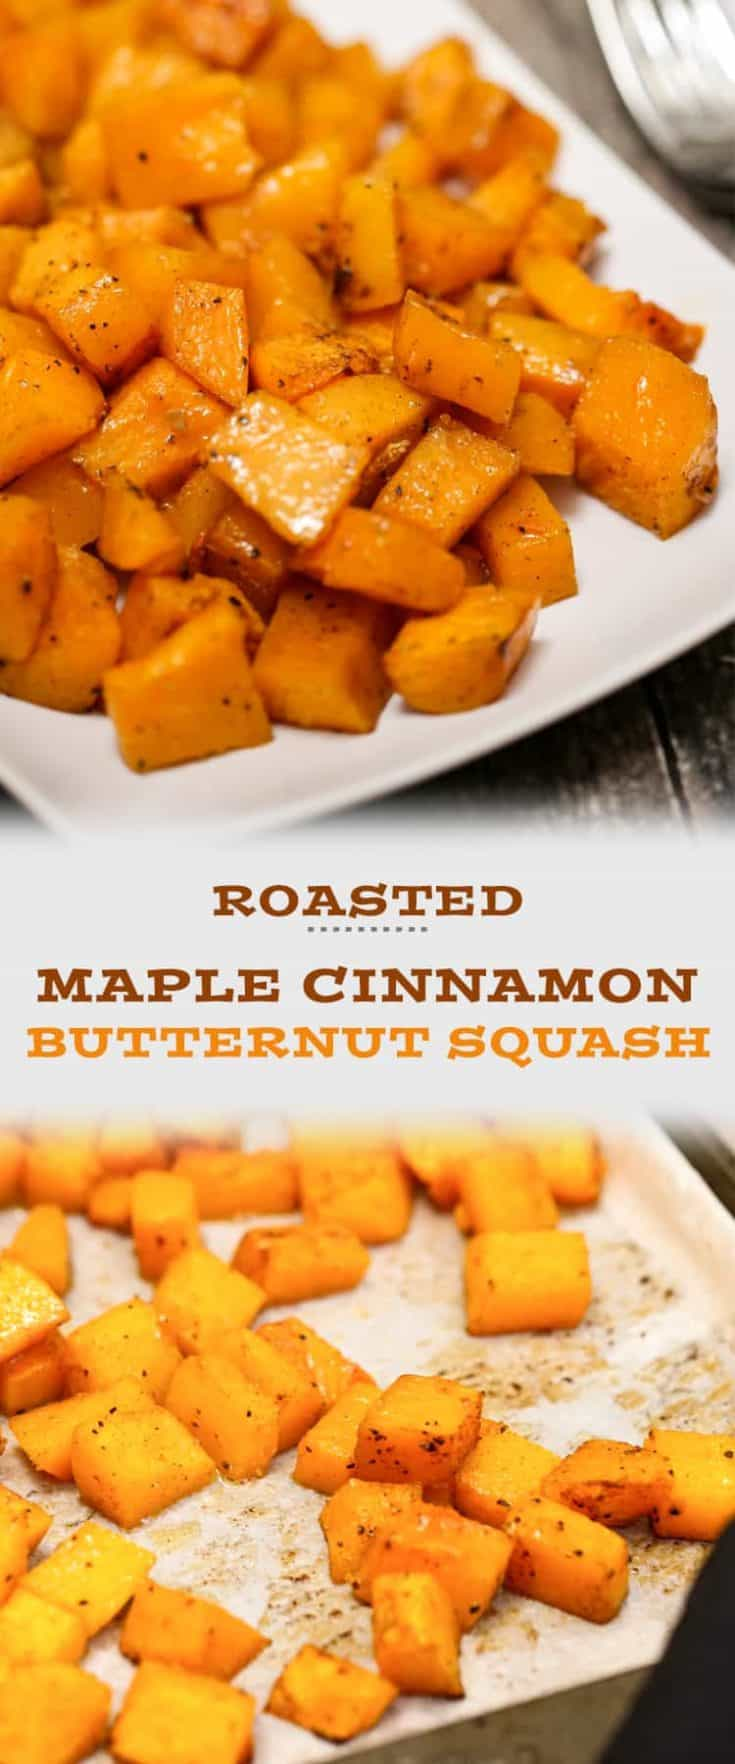 Vitamin packed Vegan, Gluten free and Paleo - Roasted Maple Cinnamon Butternut Squash is simple to bake - spread butternut squash chunk cubes on a baking sheet which were tossed in olive oil, maple syrup, cinnamon, salt and pepper. The result is a sweet caramelized roasted root vegetable that is a delicious side dish. #butternutsquash #squashrecipe #sidedish